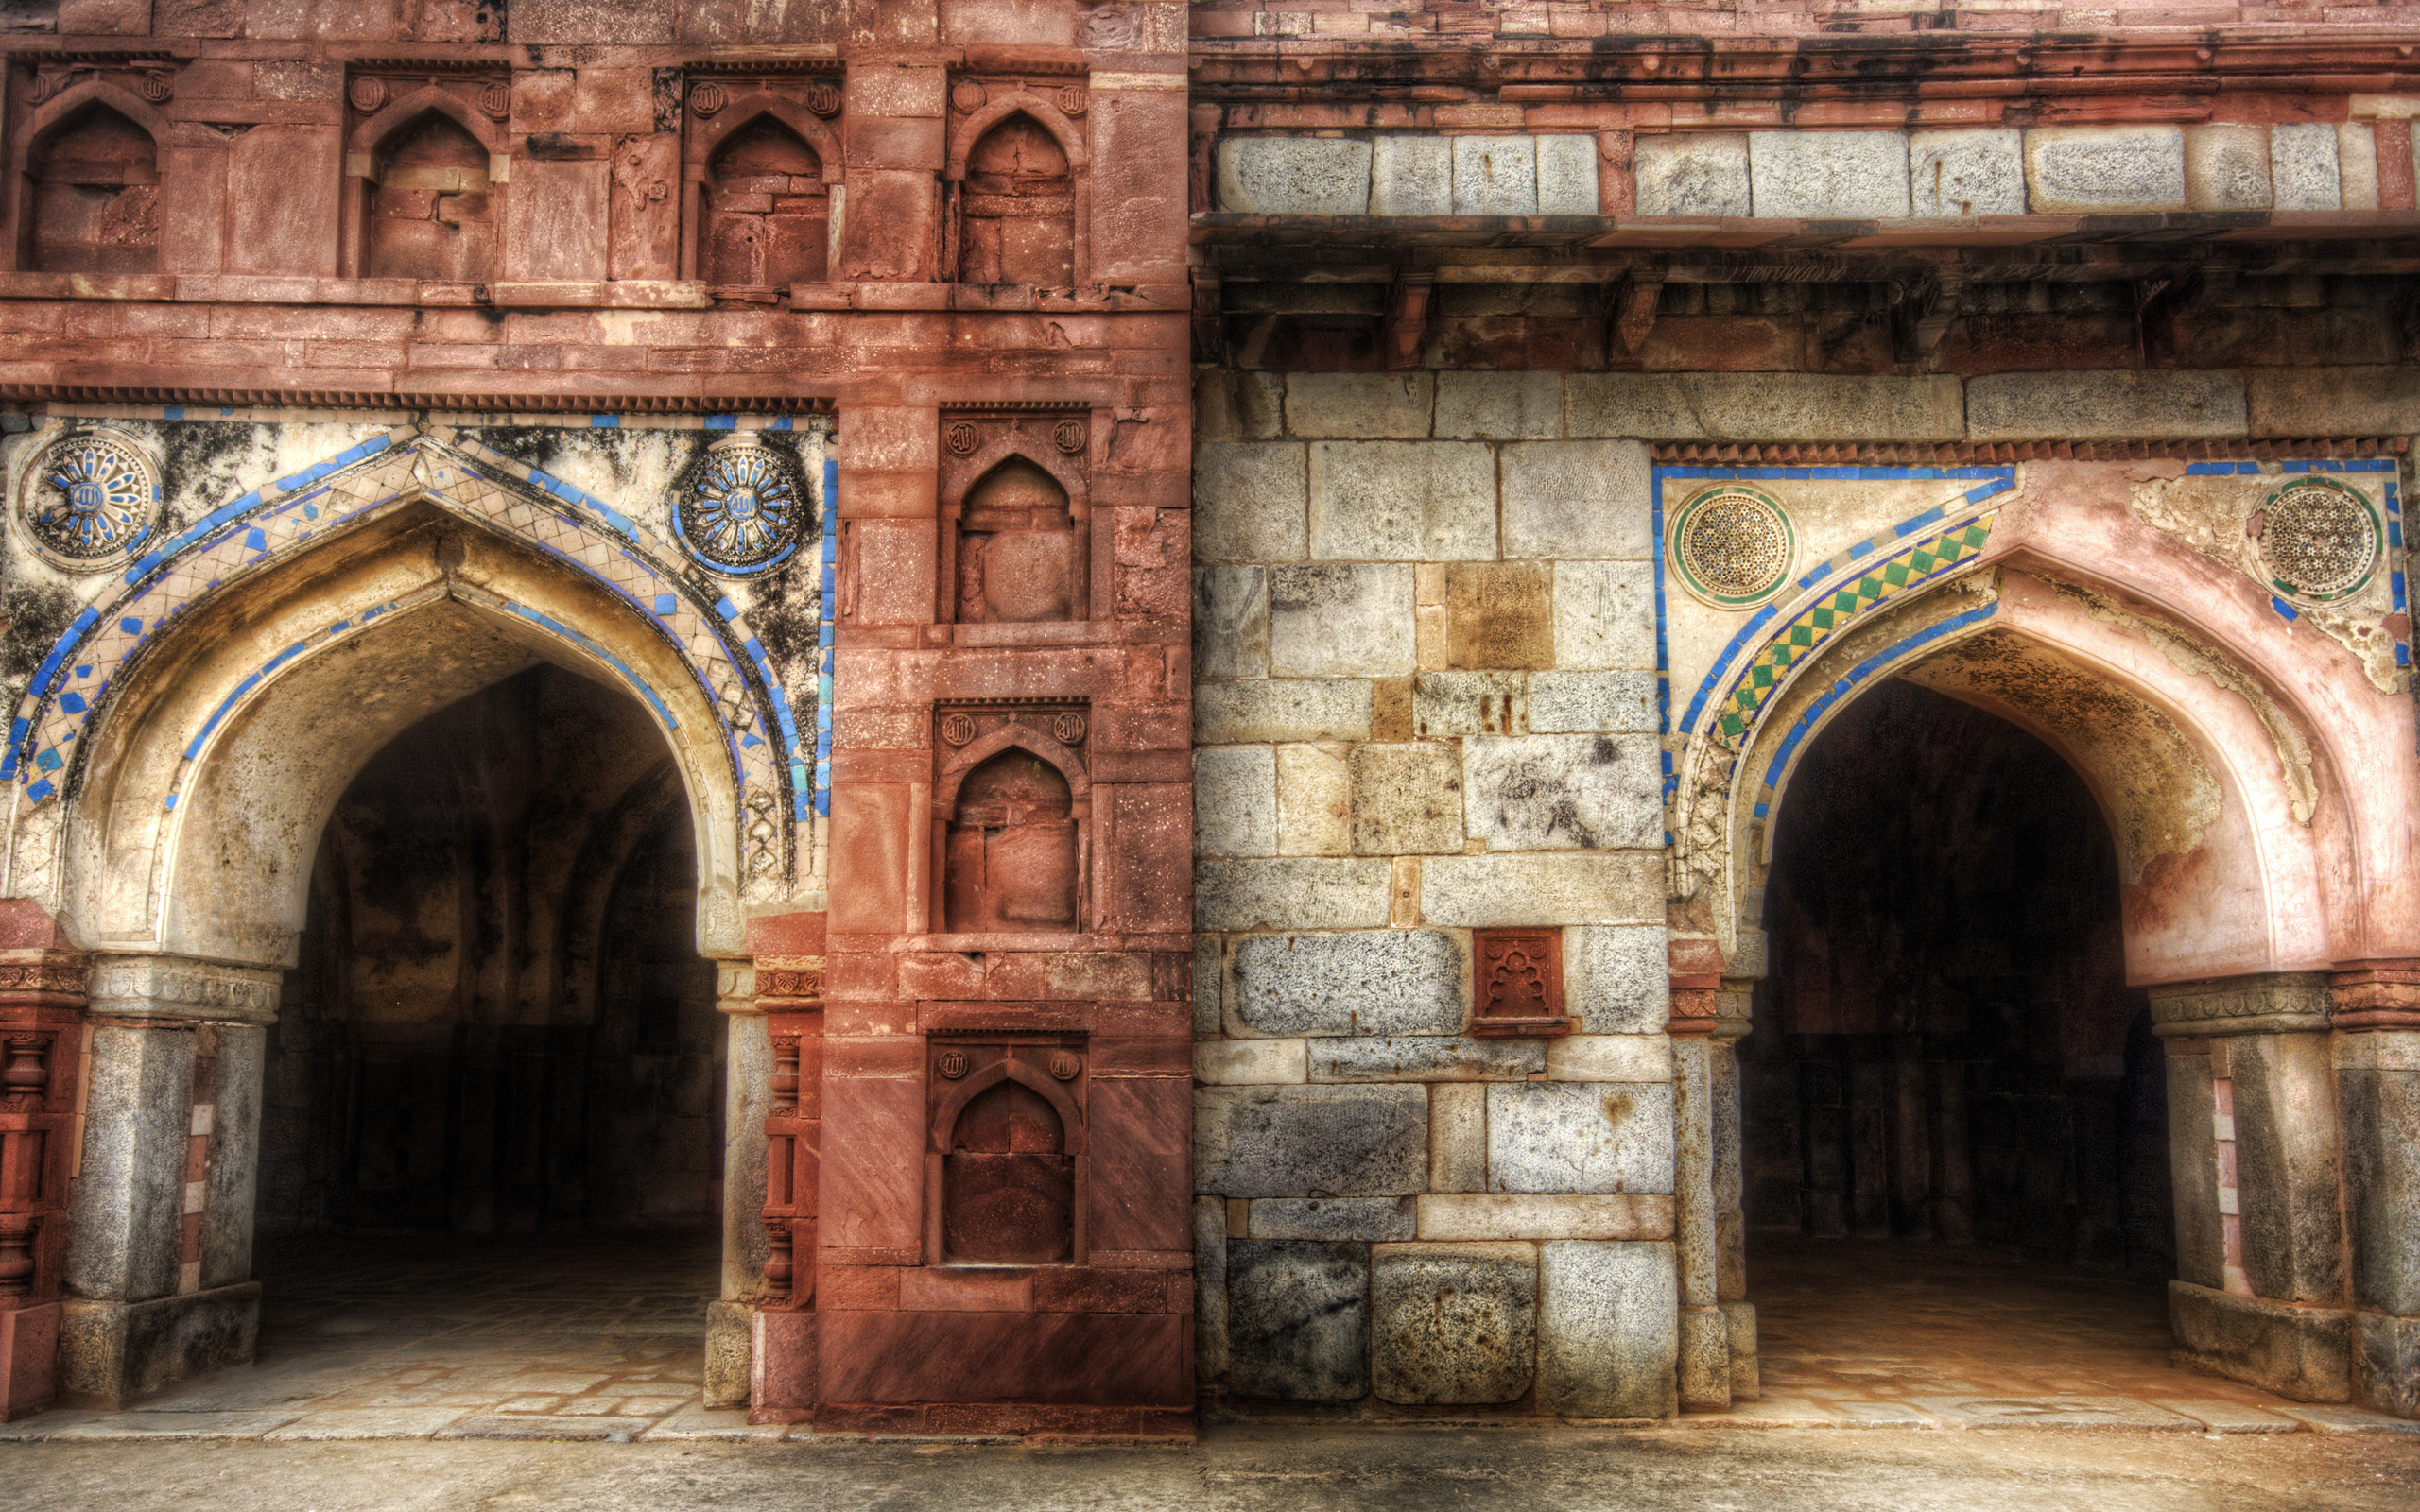 2560x1600 Doors of India desktop wallpapers 2560x1600